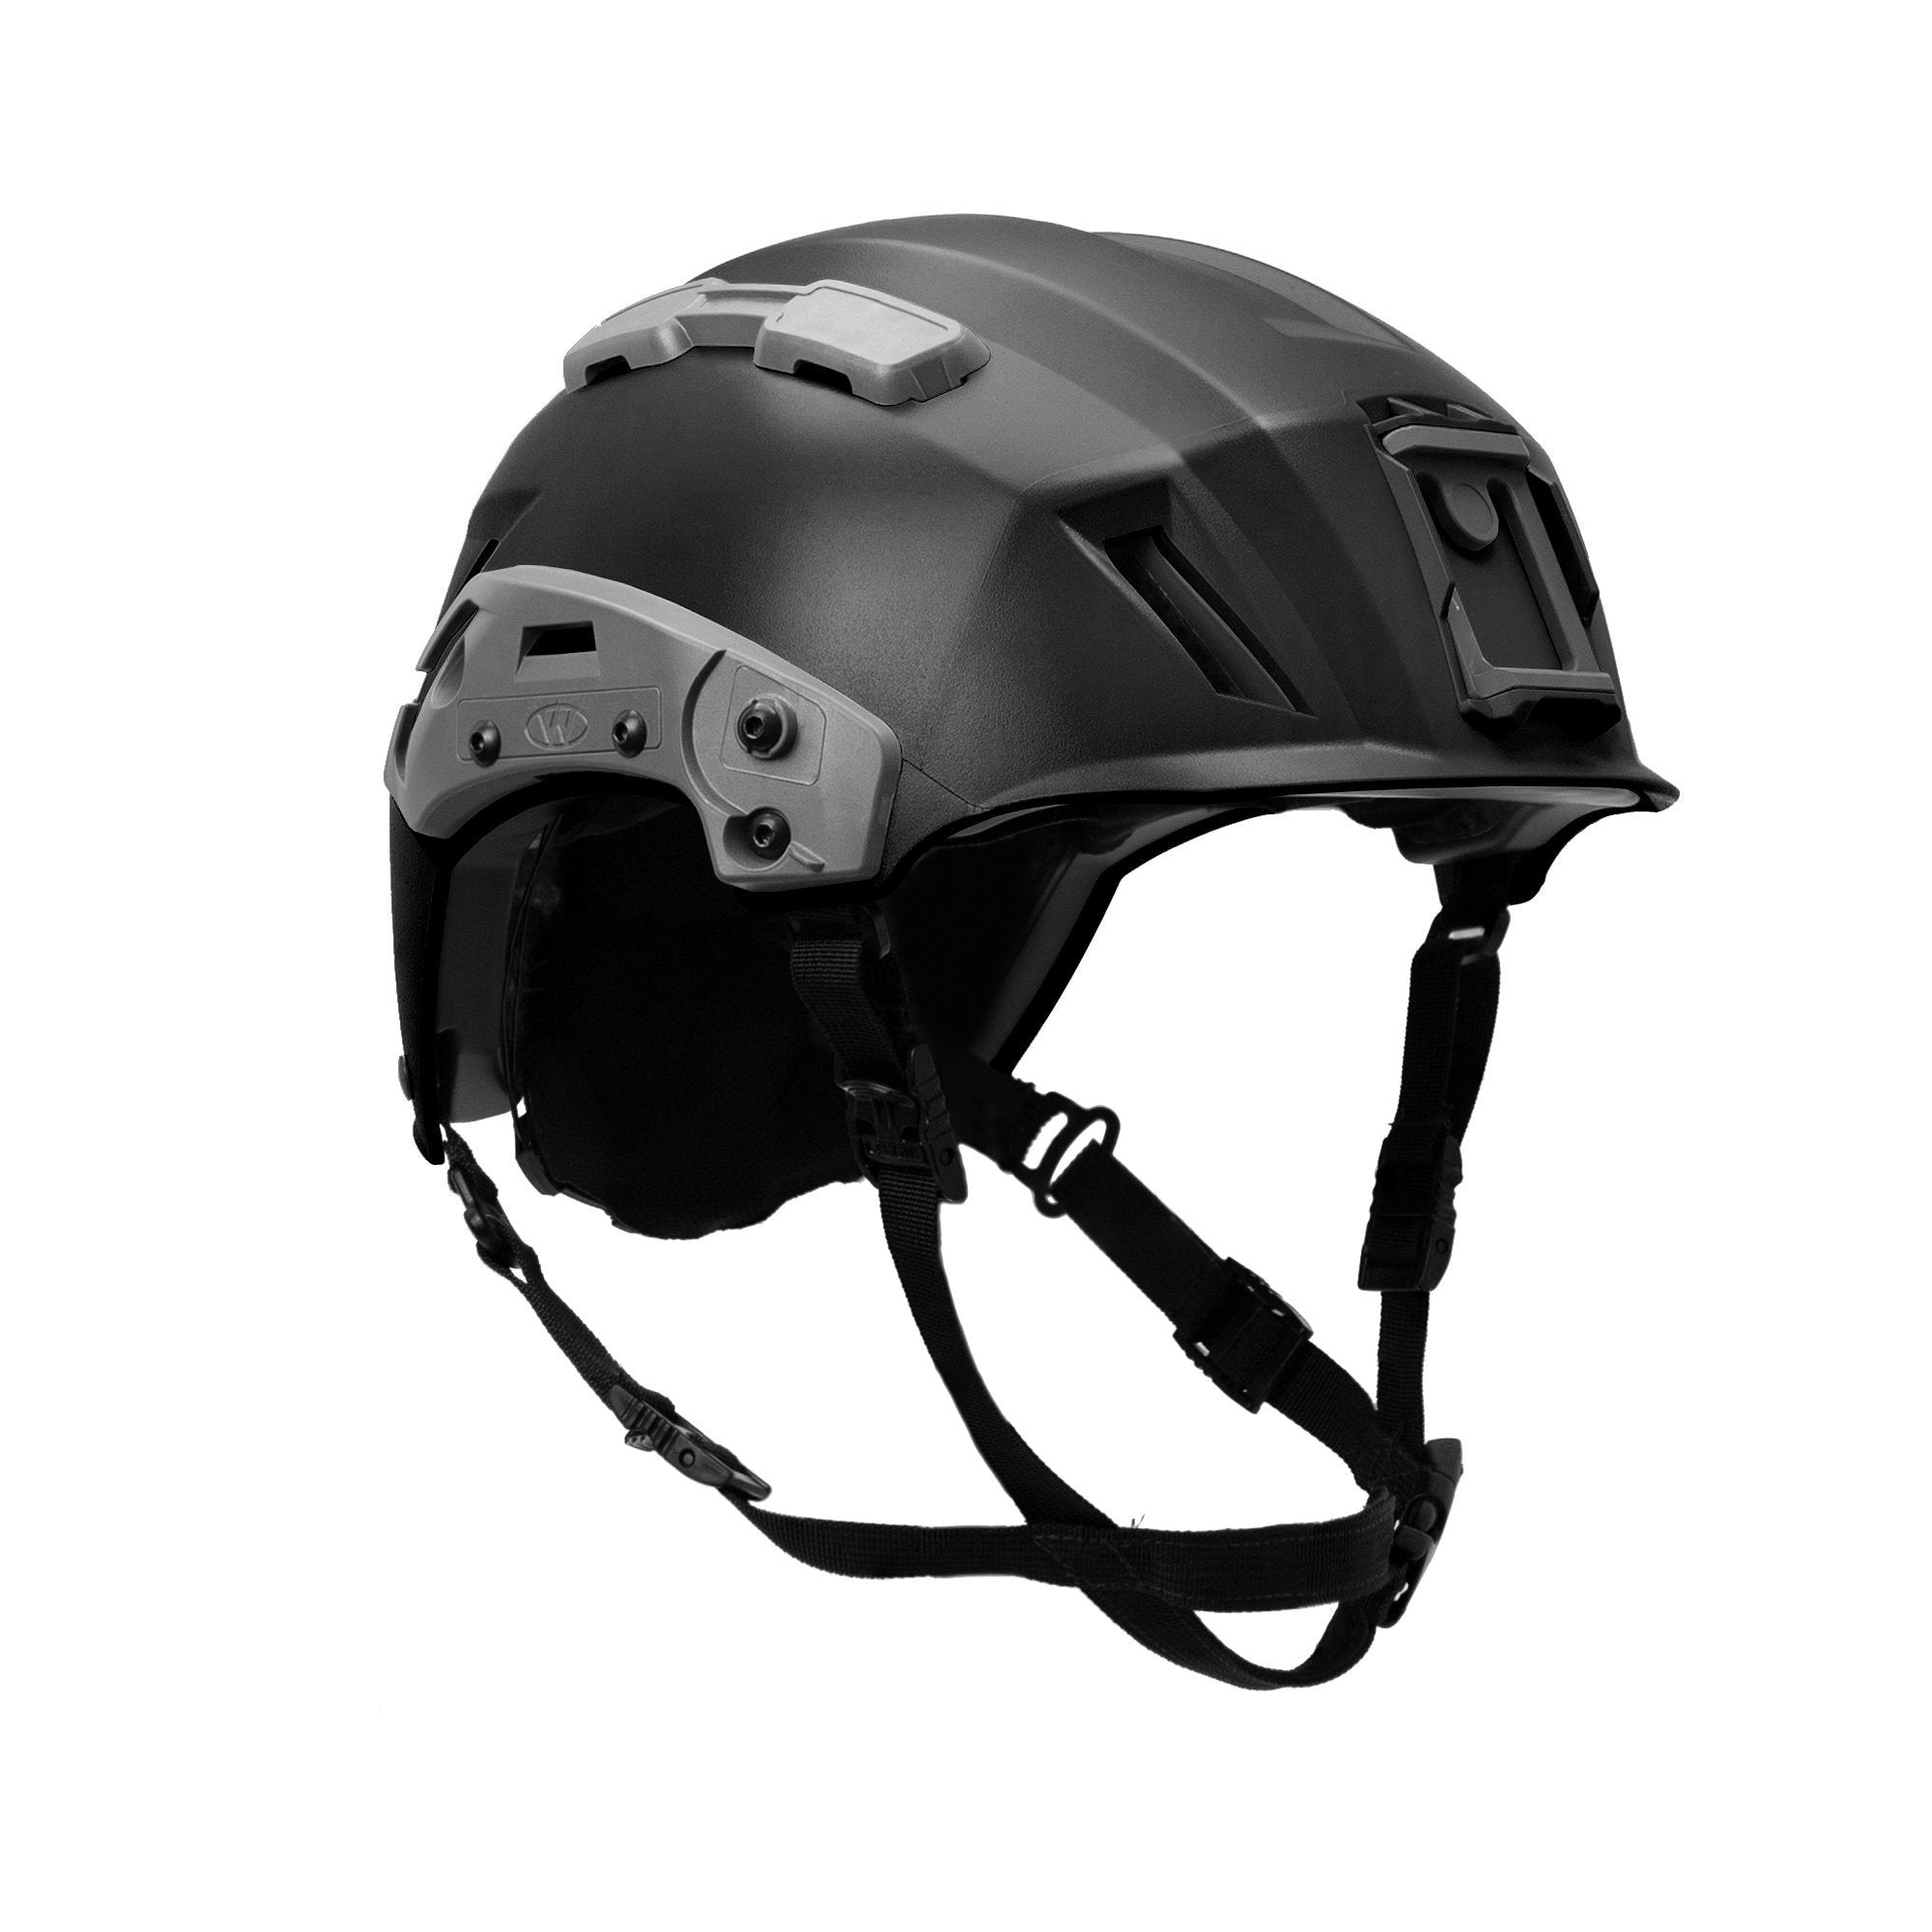 Team Wendy Helm EXFIL® SAR Tactical Schwarz